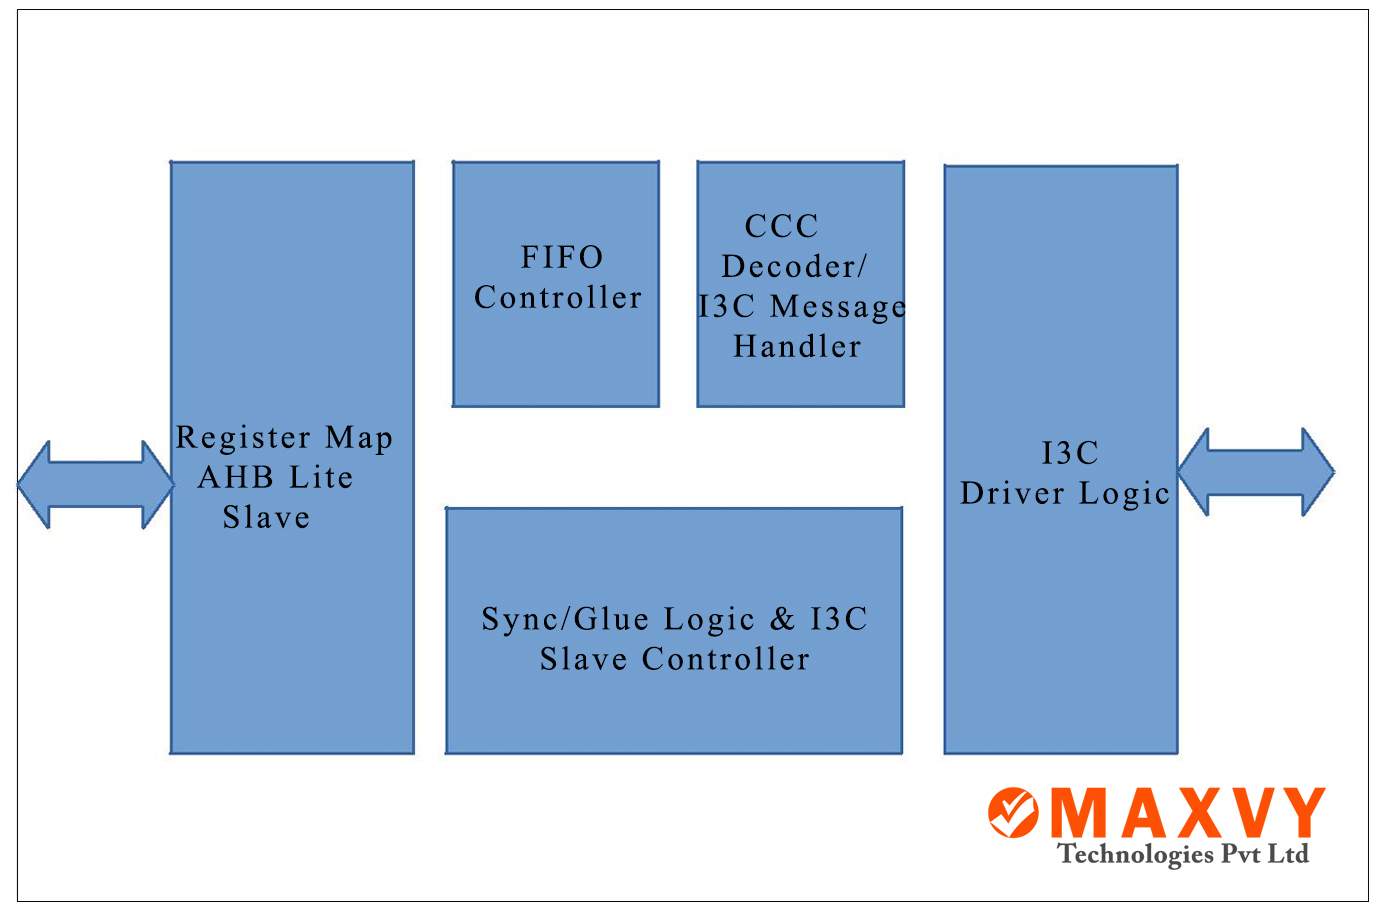 xSPI Master Controller | Maxvy Technologies